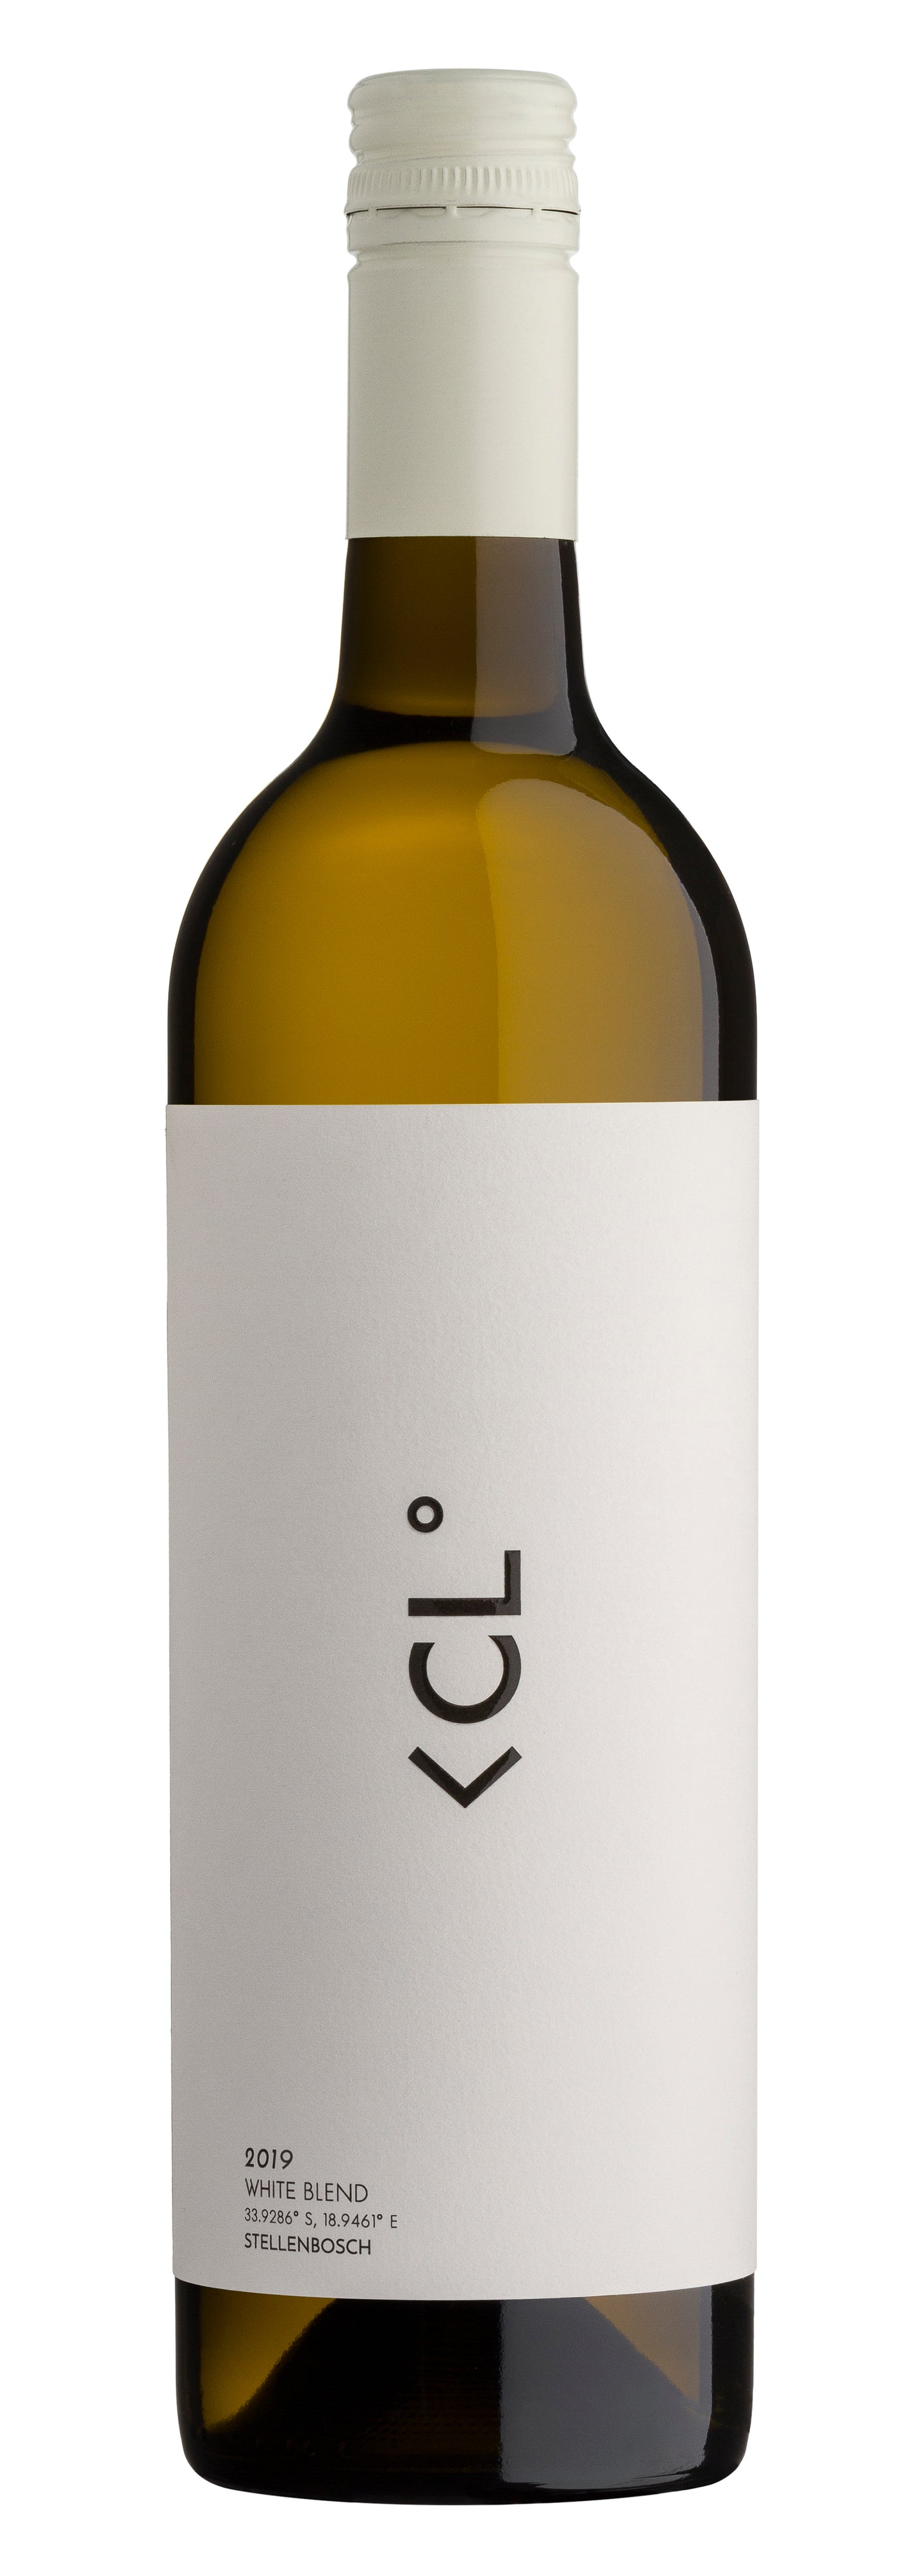 OLDENBURG CL White Blend 2019